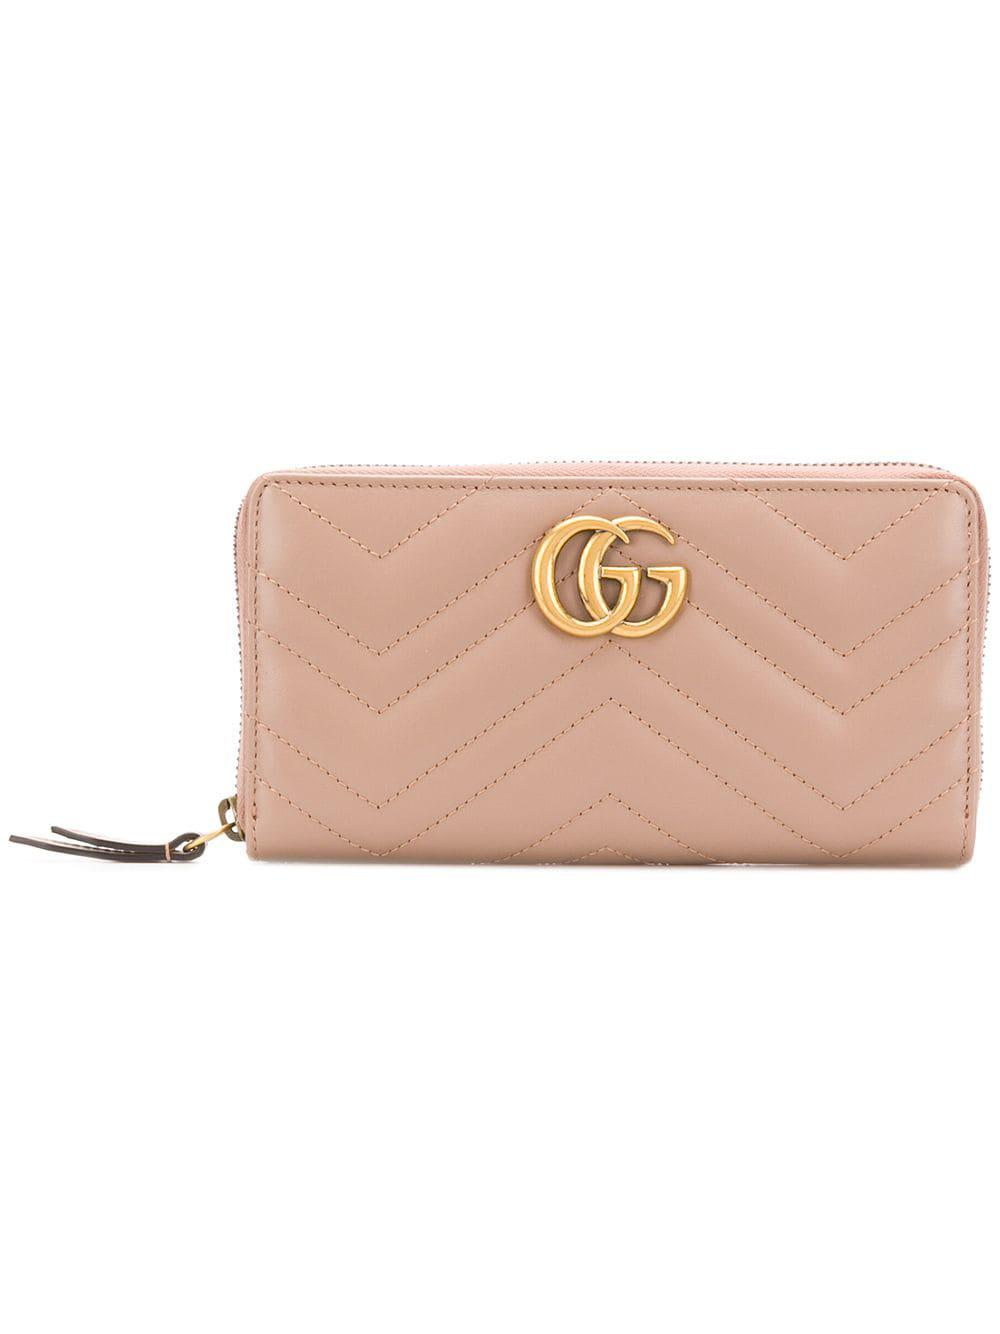 ee3f0fd47bc Lyst - Gucci GG Marmont Purse